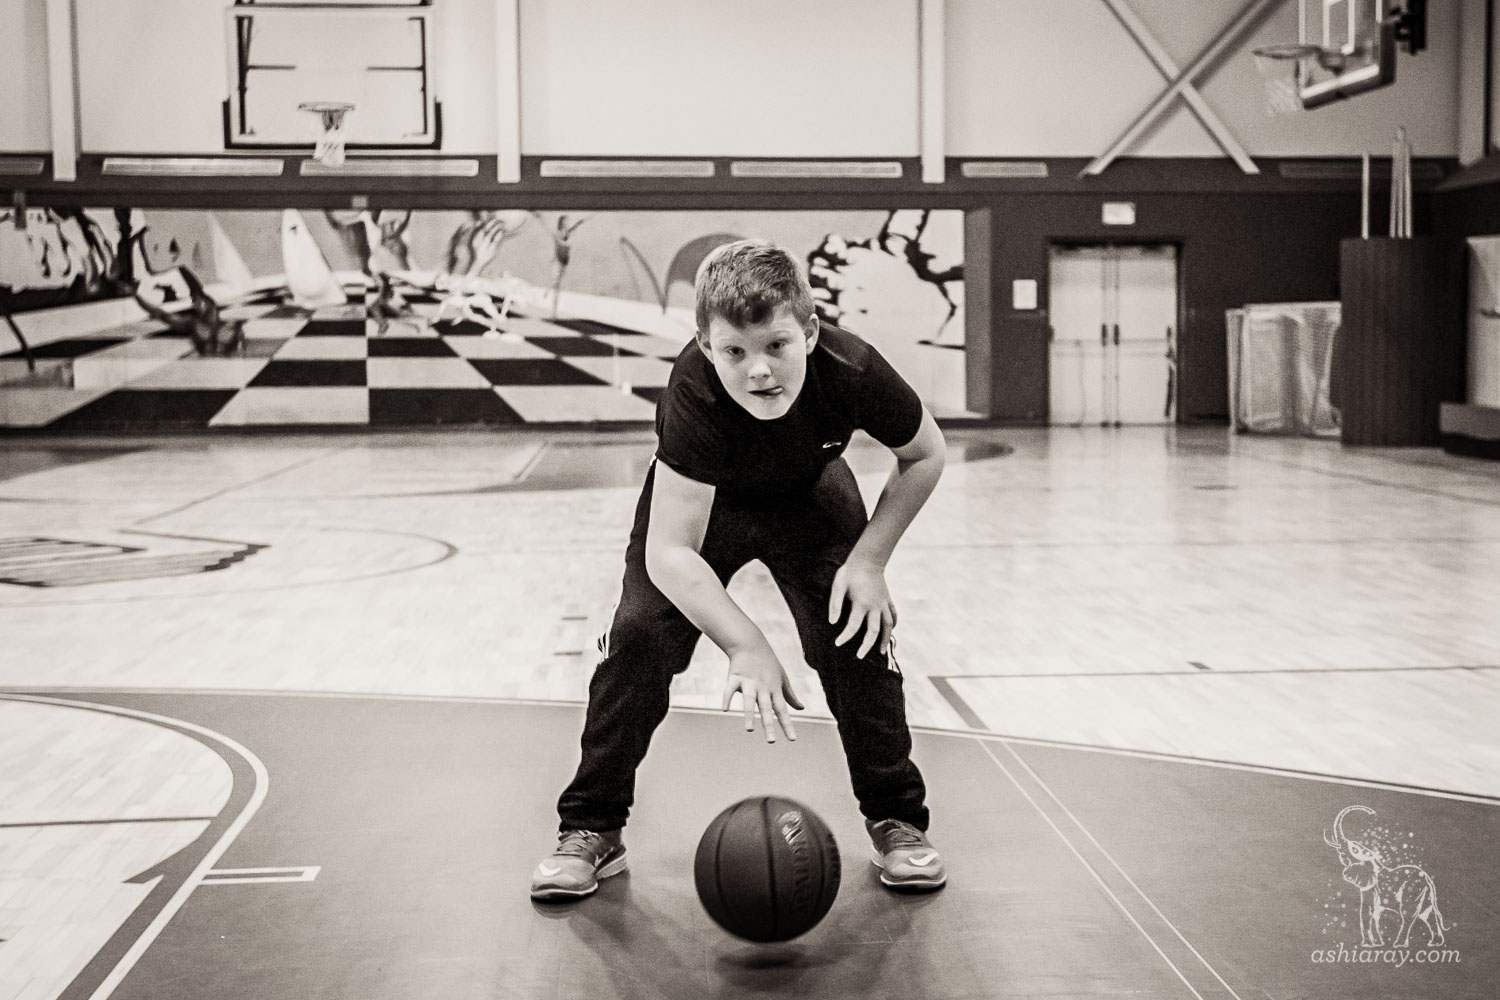 13-year-old boy dribbles a basketball, tounge poking out in concentration